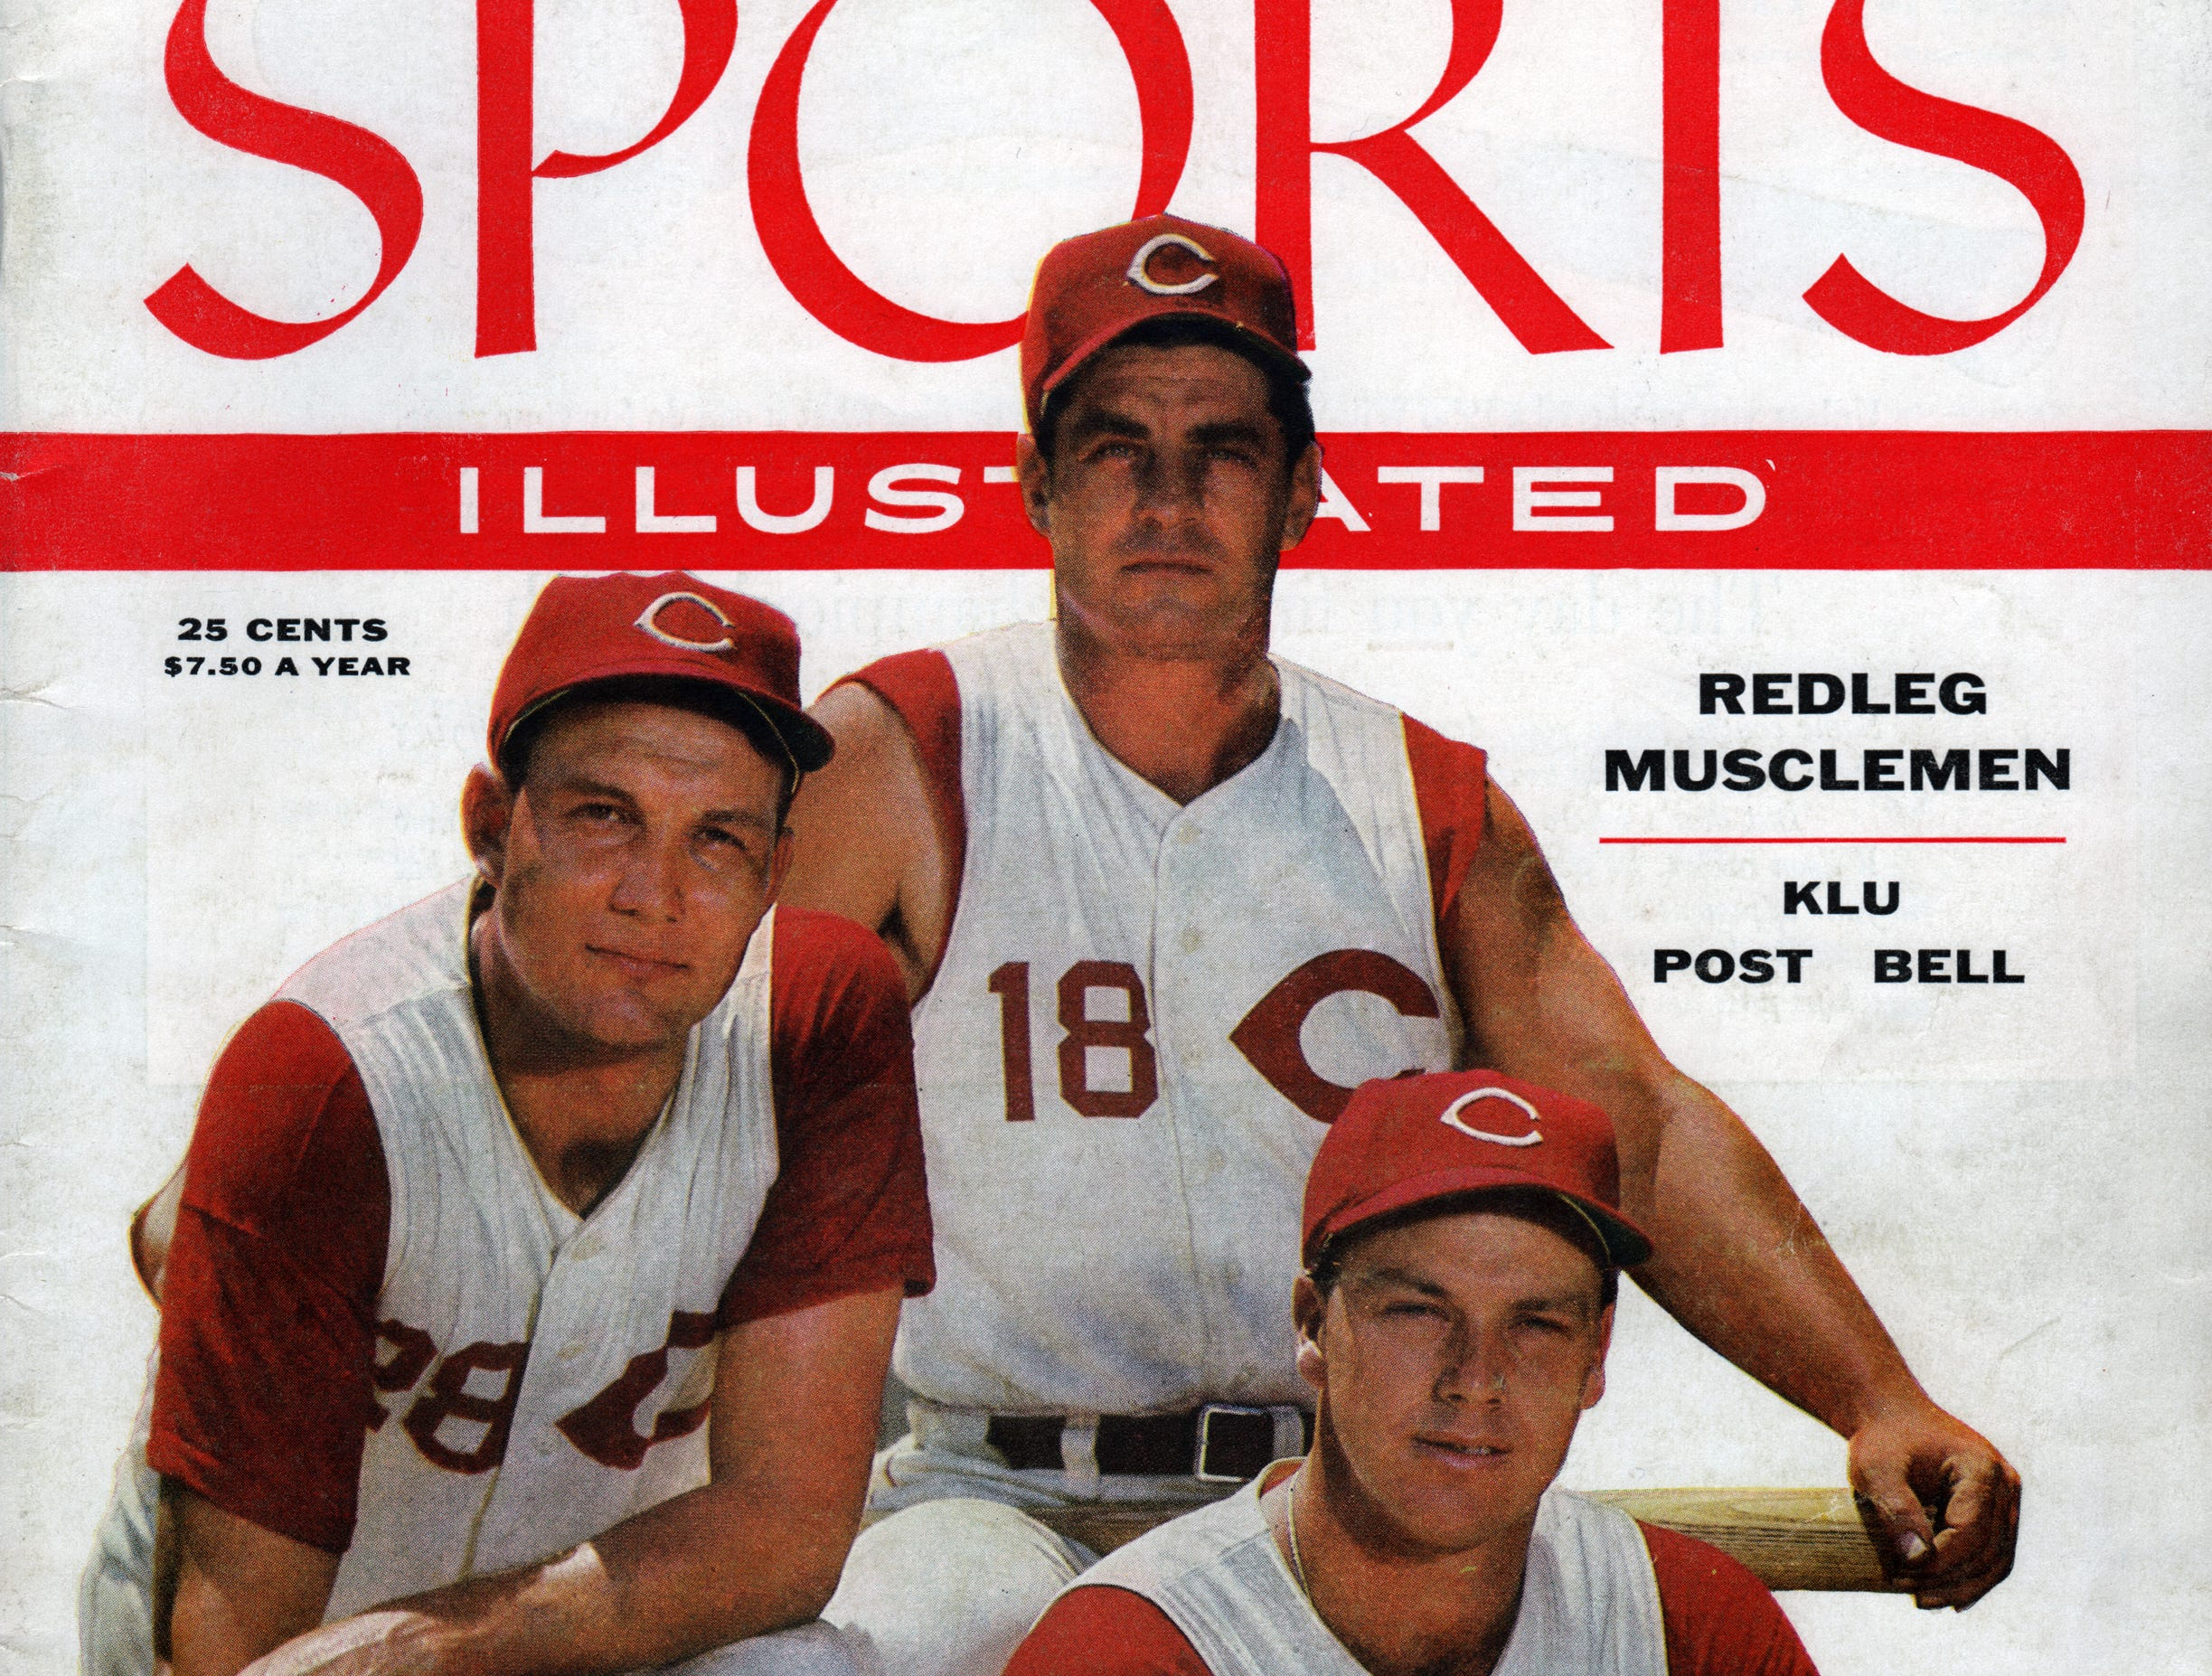 Sports Illustrated cover from July 16, 1956 featuring Reds players Ted Kluszewski, Wally Post and Gus Bell.